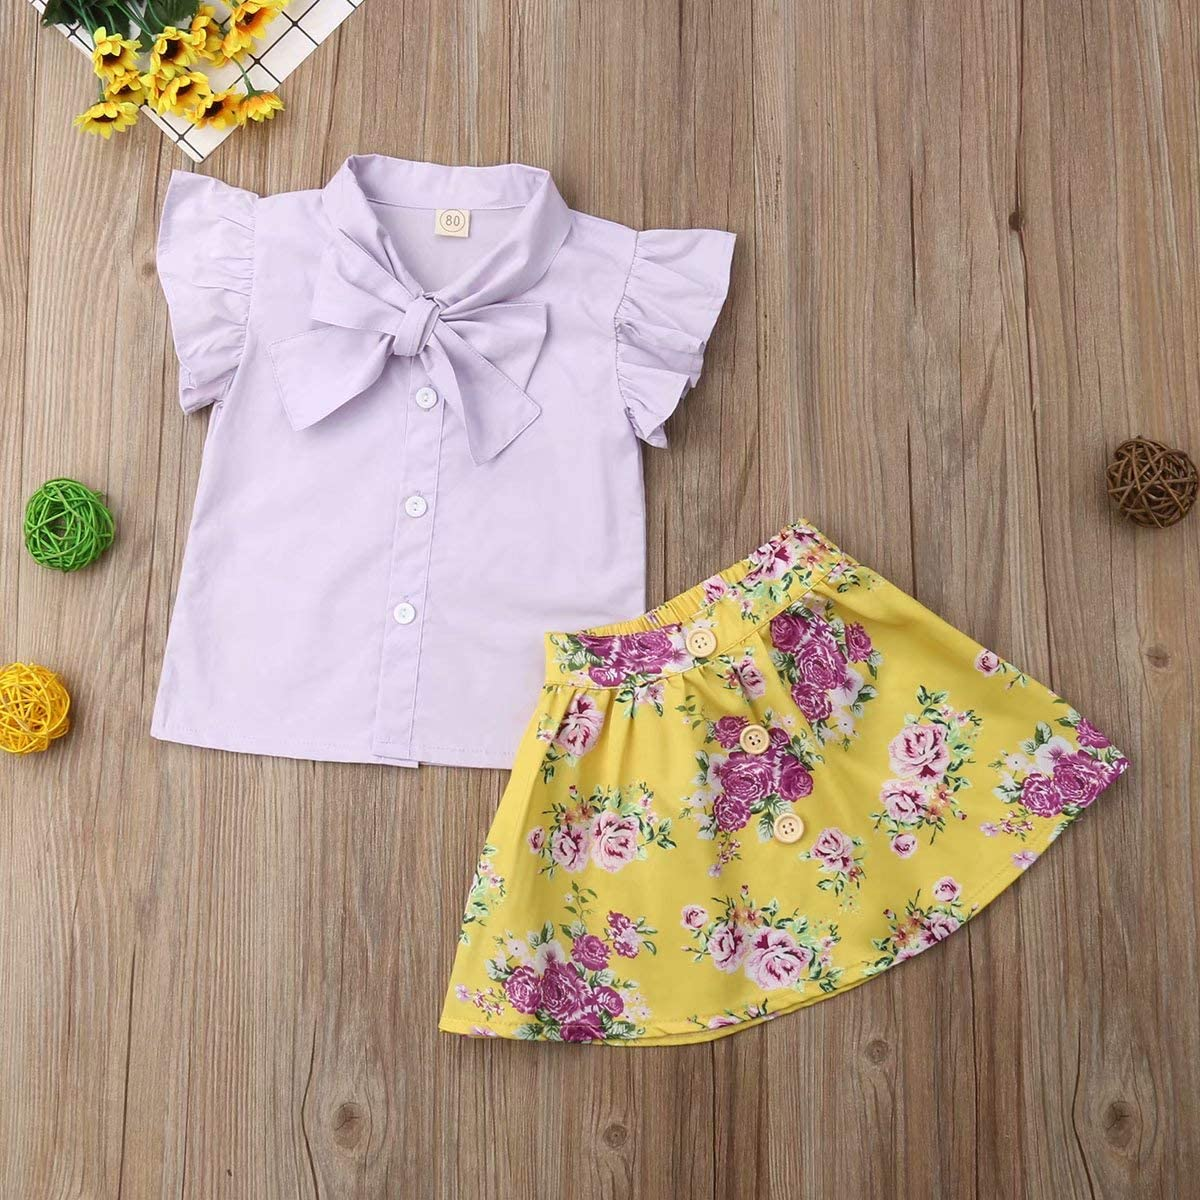 Kids Infant Baby Girls Summer 2Pcs Ruffled Sleeve Tops Shirt with Bowknot Suspender Floral Shorts//Skirt Clothing Set